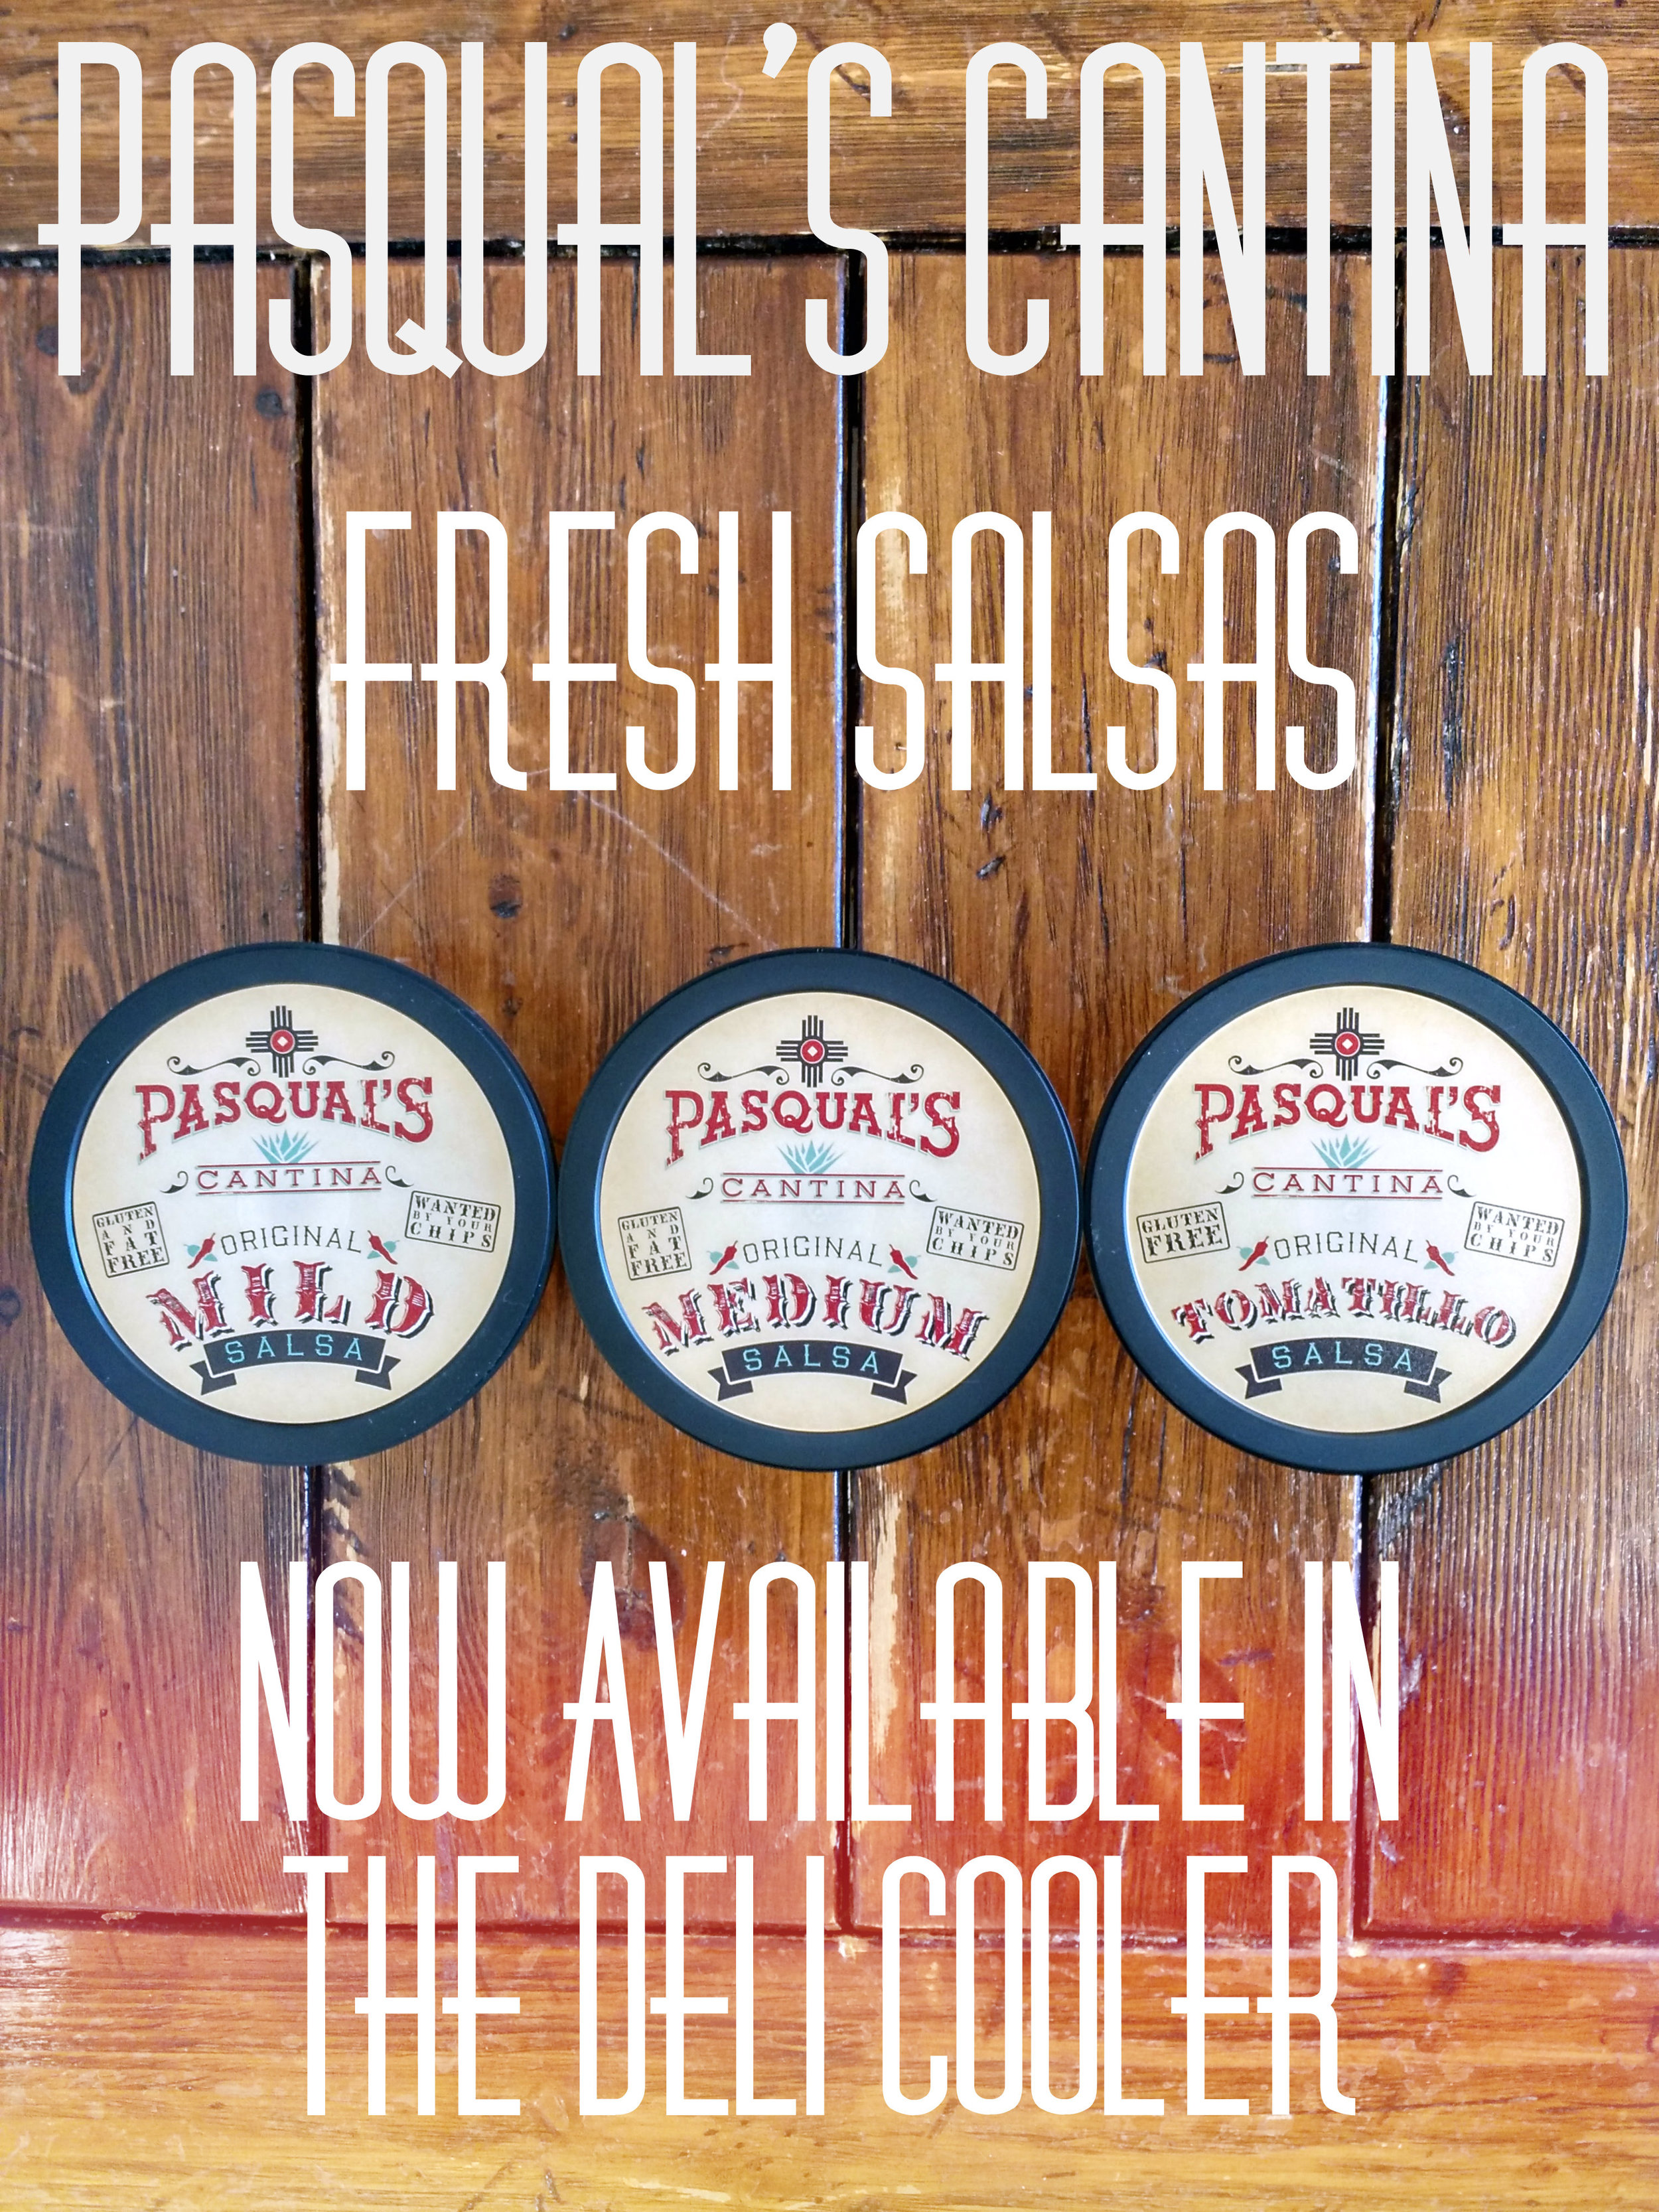 HEY METCALFE'S SHOPPERS! - From May 10th-23rd, all Metcalfe's Market E-newsletter subscribers will receive a coupon for one free Pasqual's Fresh Salsa (Mild, Medium or Tomatillo, available in the deli area) with grocery purchase of $20 or more! Valid at all 3 Metcalfe's locations, some restrictions apply.To sign up for Metcalfe's Mail, click the link below!http://www.shopmetcalfes.com/email-signup/index.aspAnd don't forget to pick up a bag of our irresistible Southwest tortilla chips to go along with it!